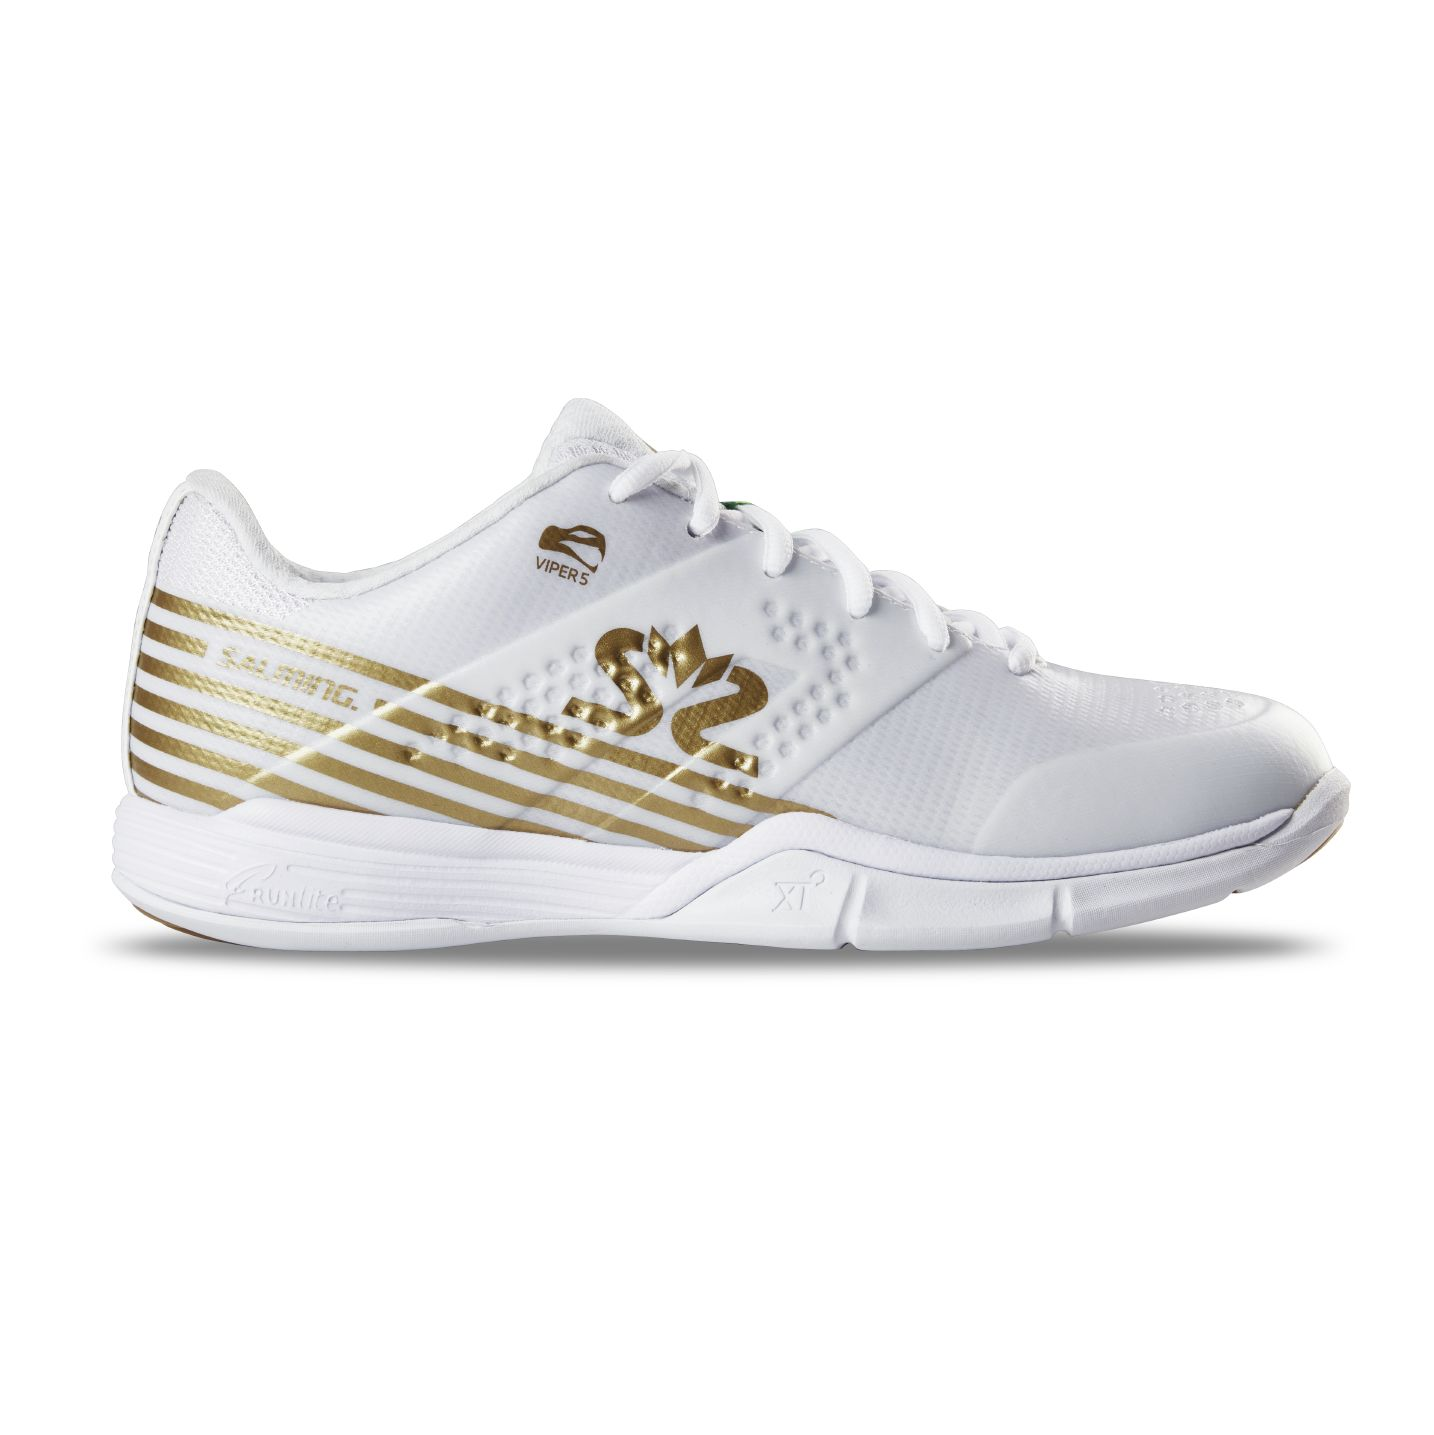 Salming Viper 5 Shoe Women White/Gold 7 UK - 40 2/3 EUR - 26 cm